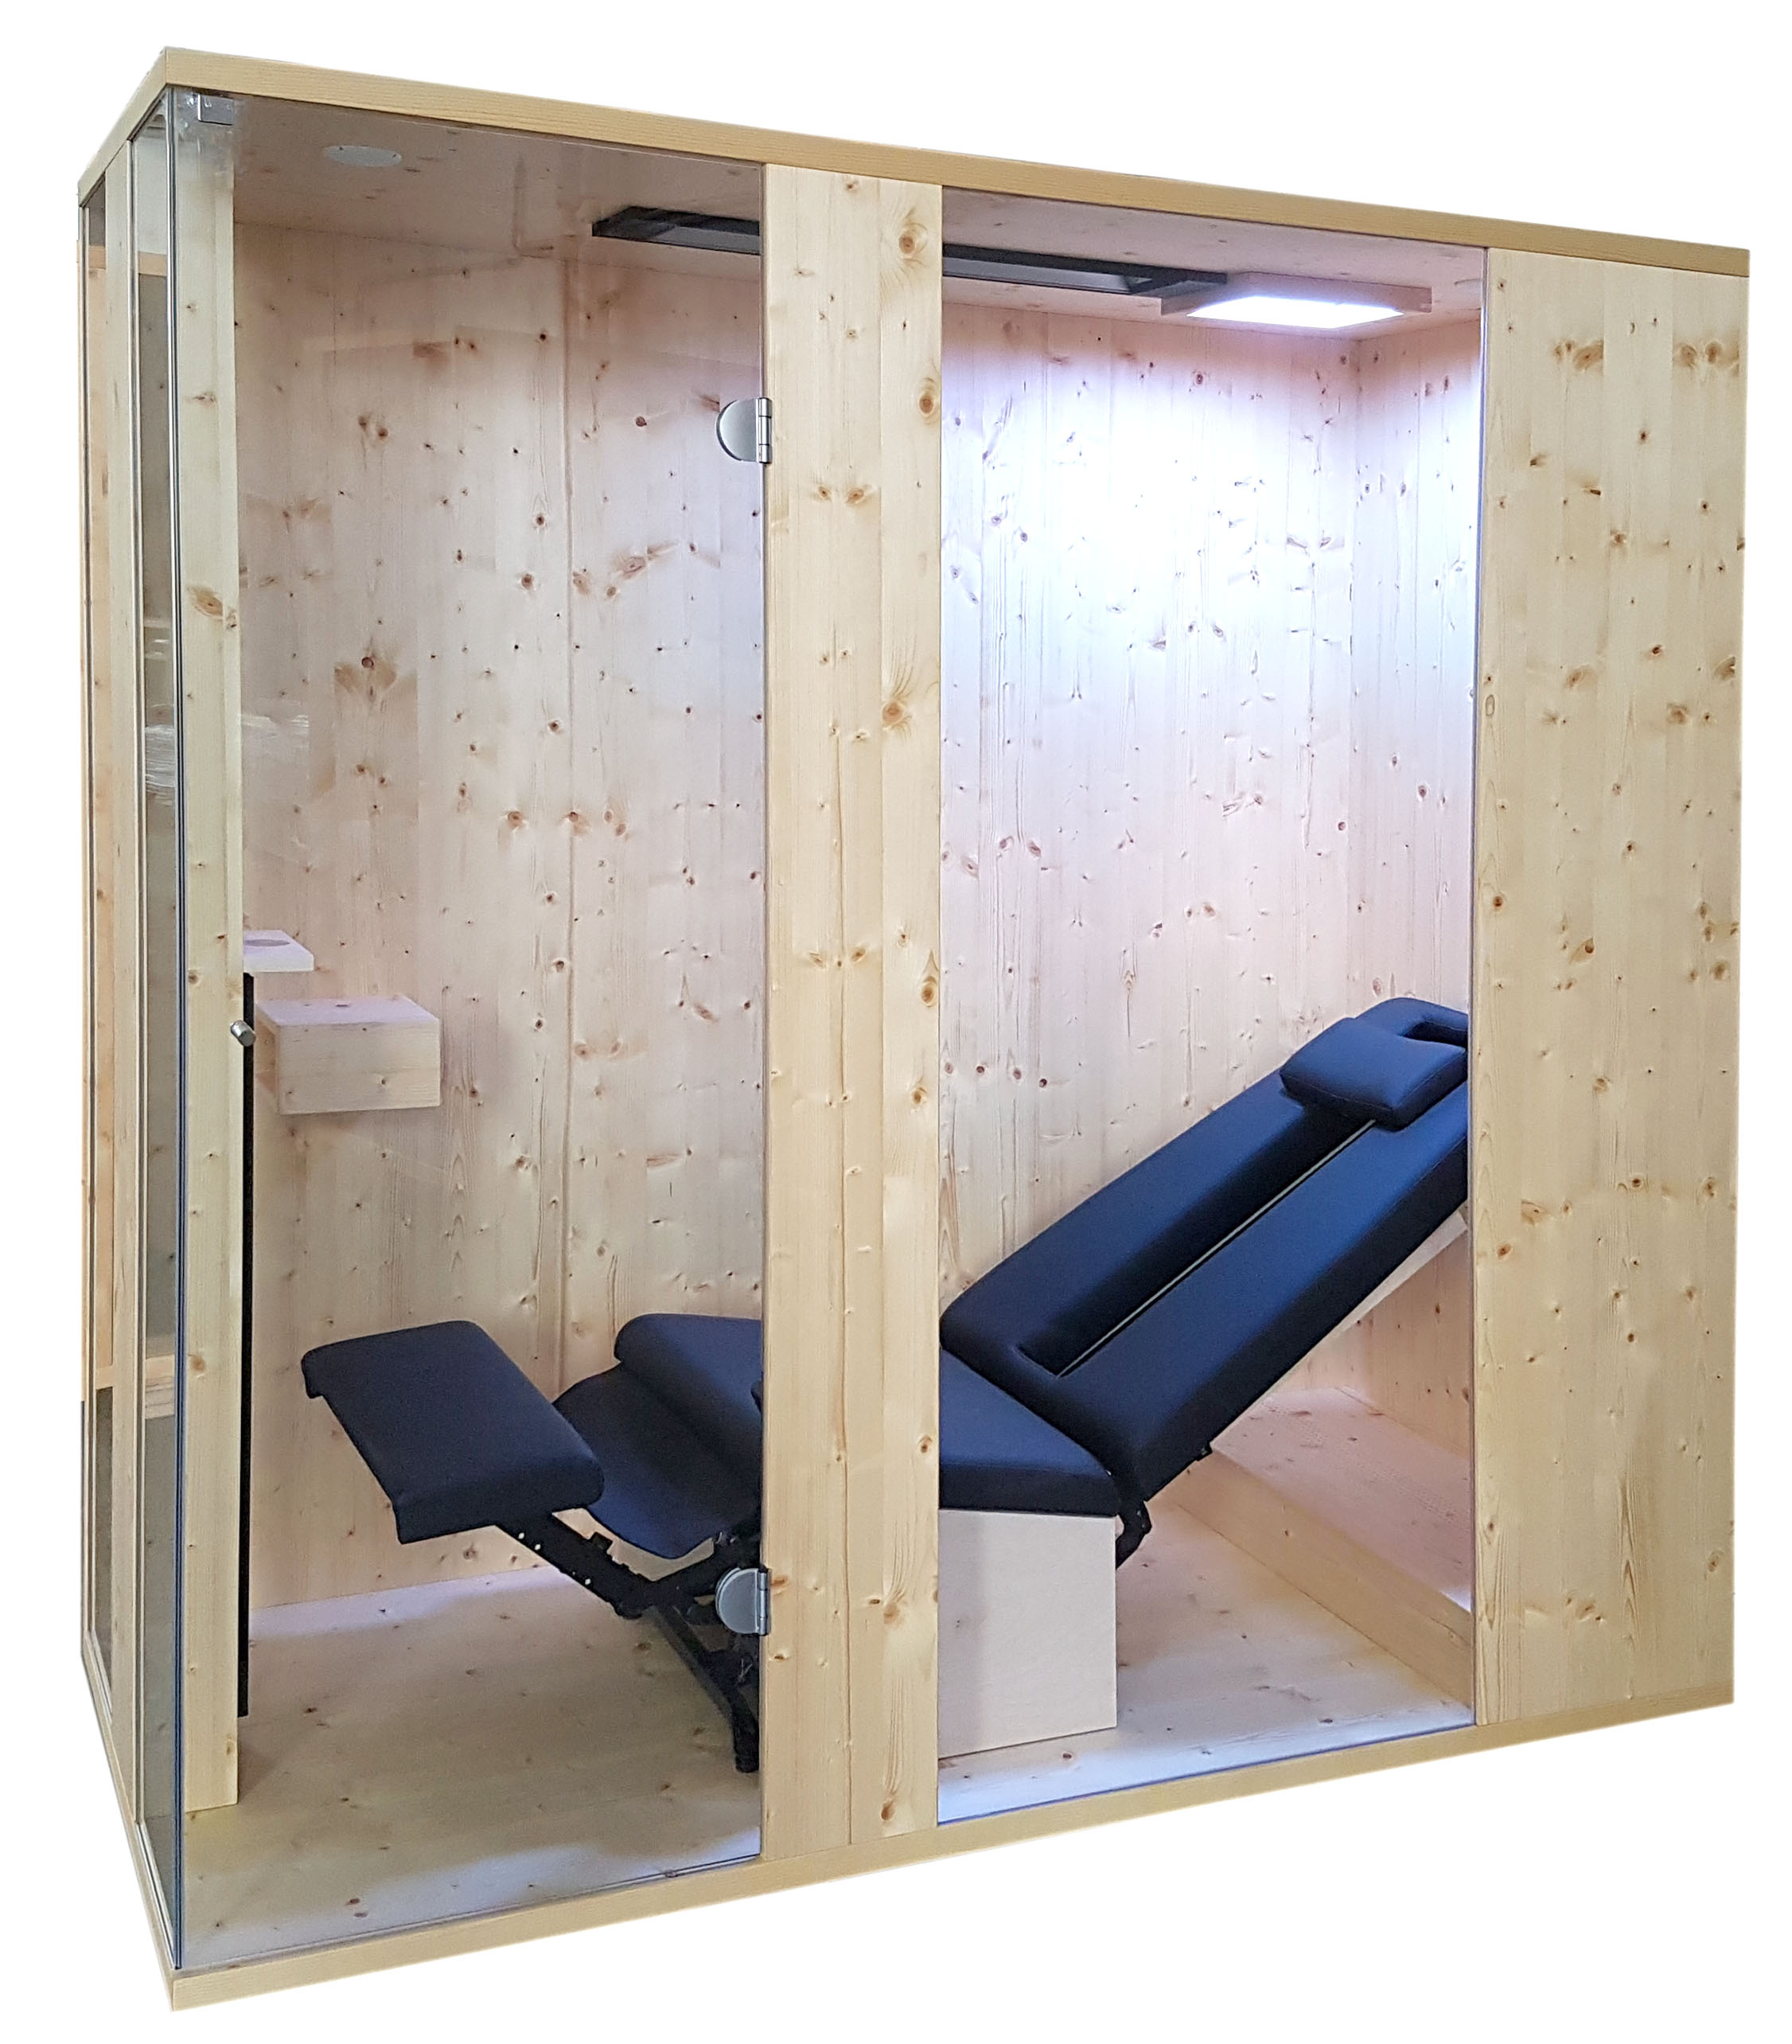 relaxkabine relax spa 1 made in austria gurtner wellness. Black Bedroom Furniture Sets. Home Design Ideas